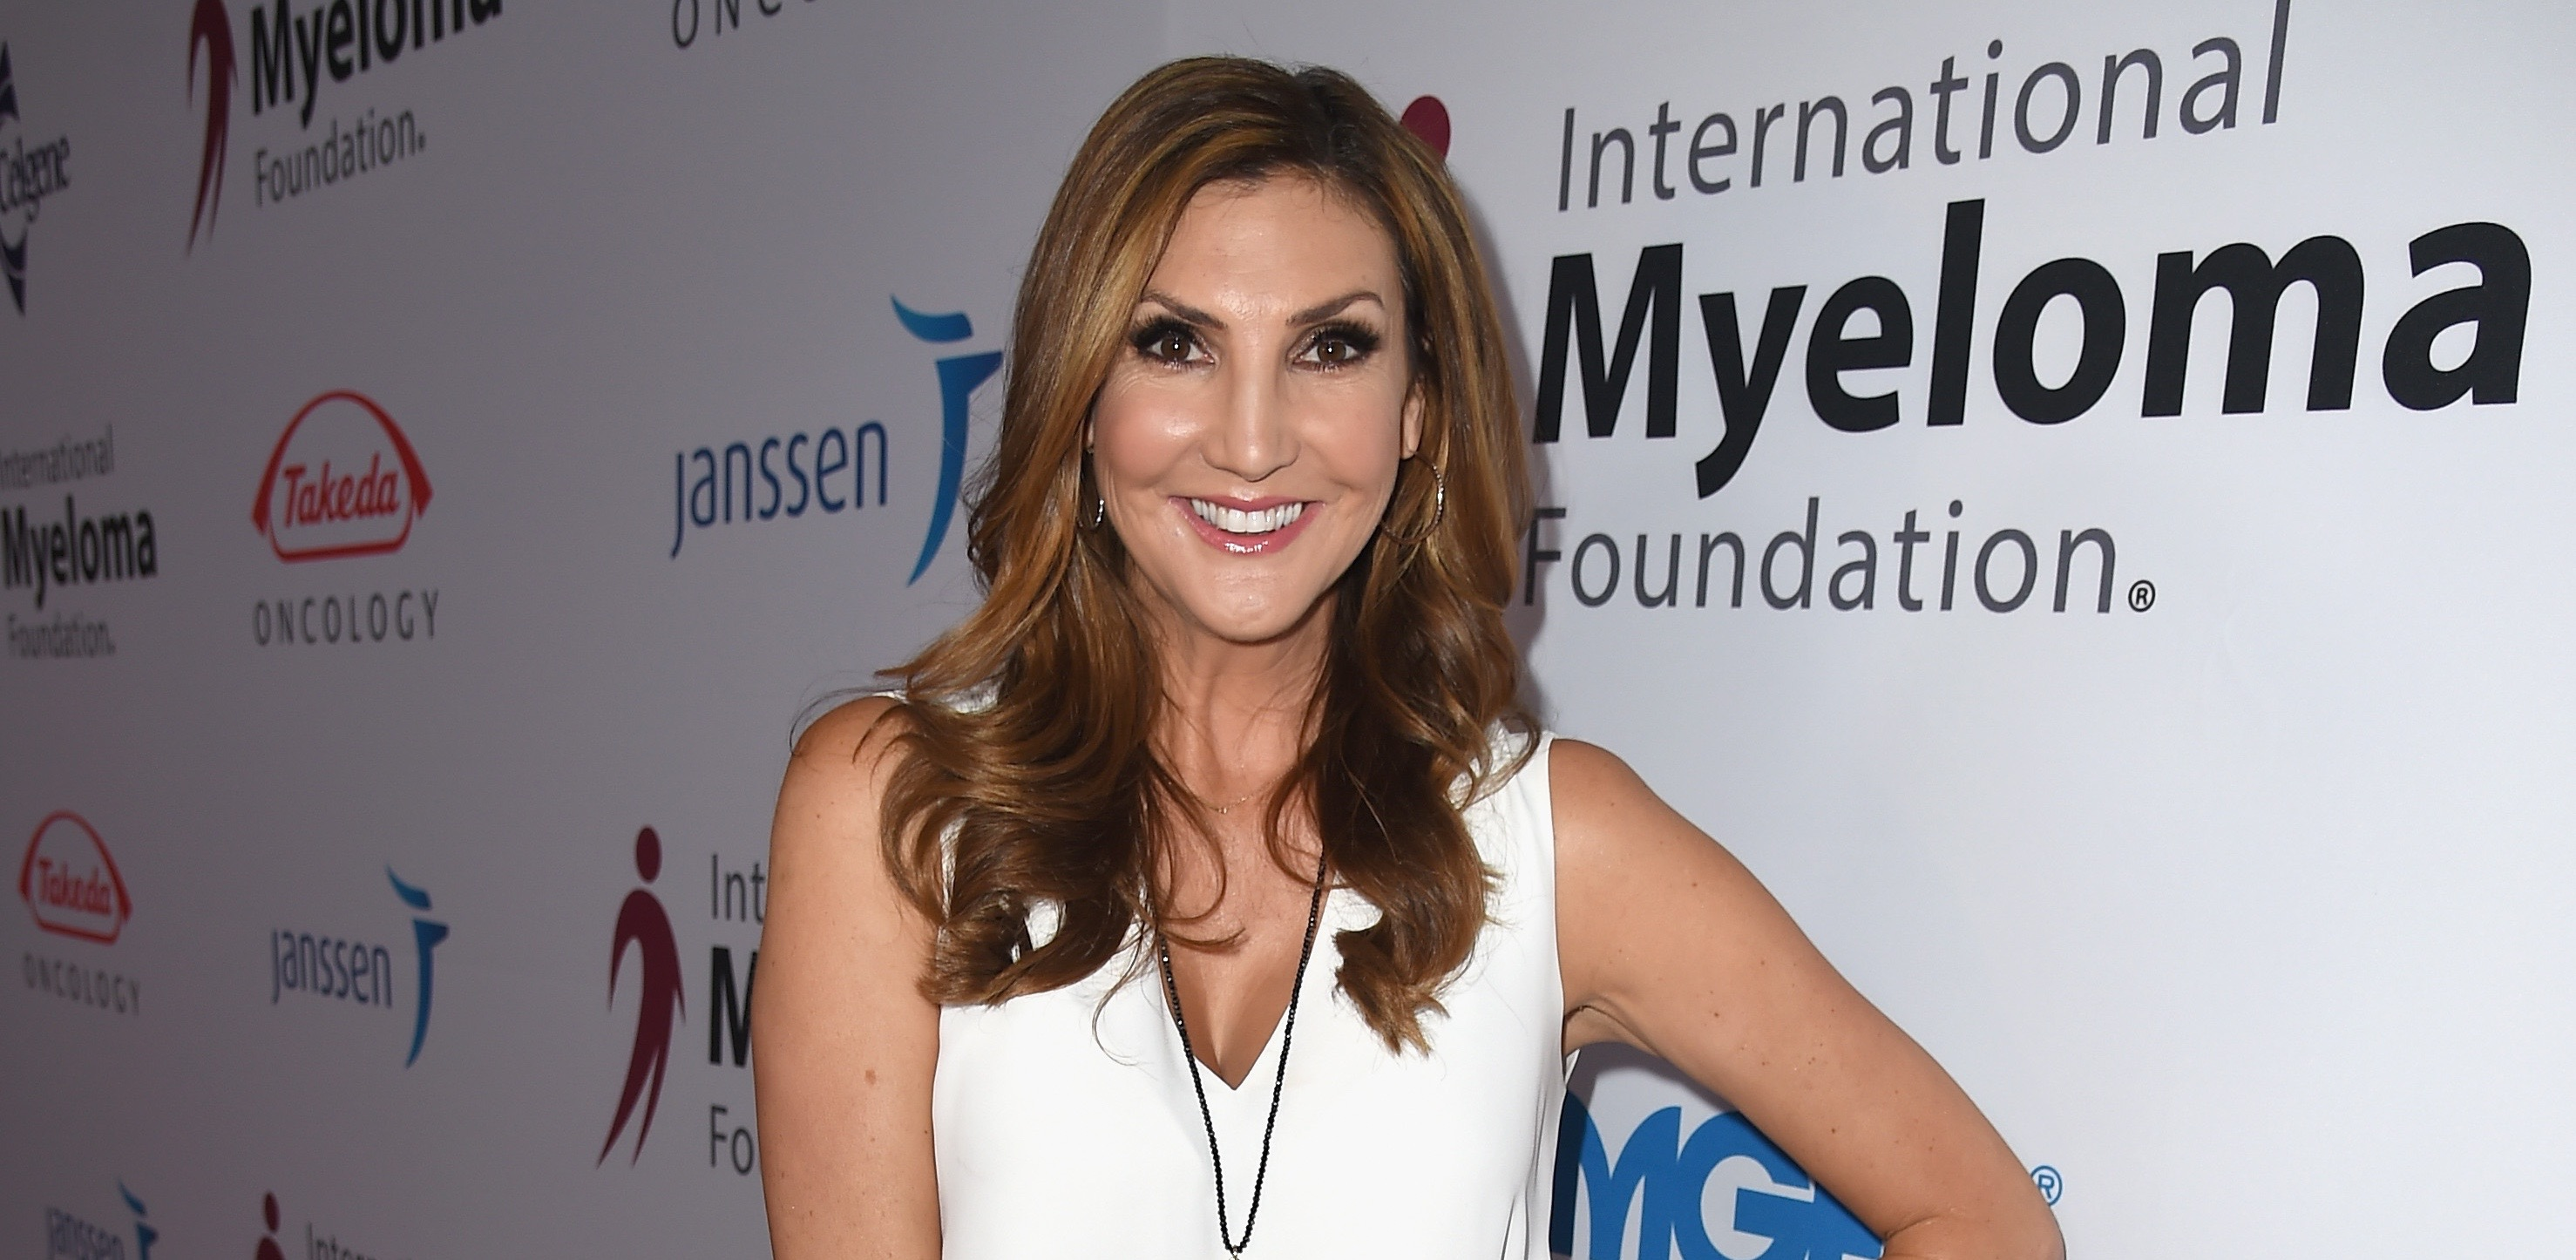 International Myeloma Foundation Presents The 9th Annual Comedy Celebration – Red Carpet